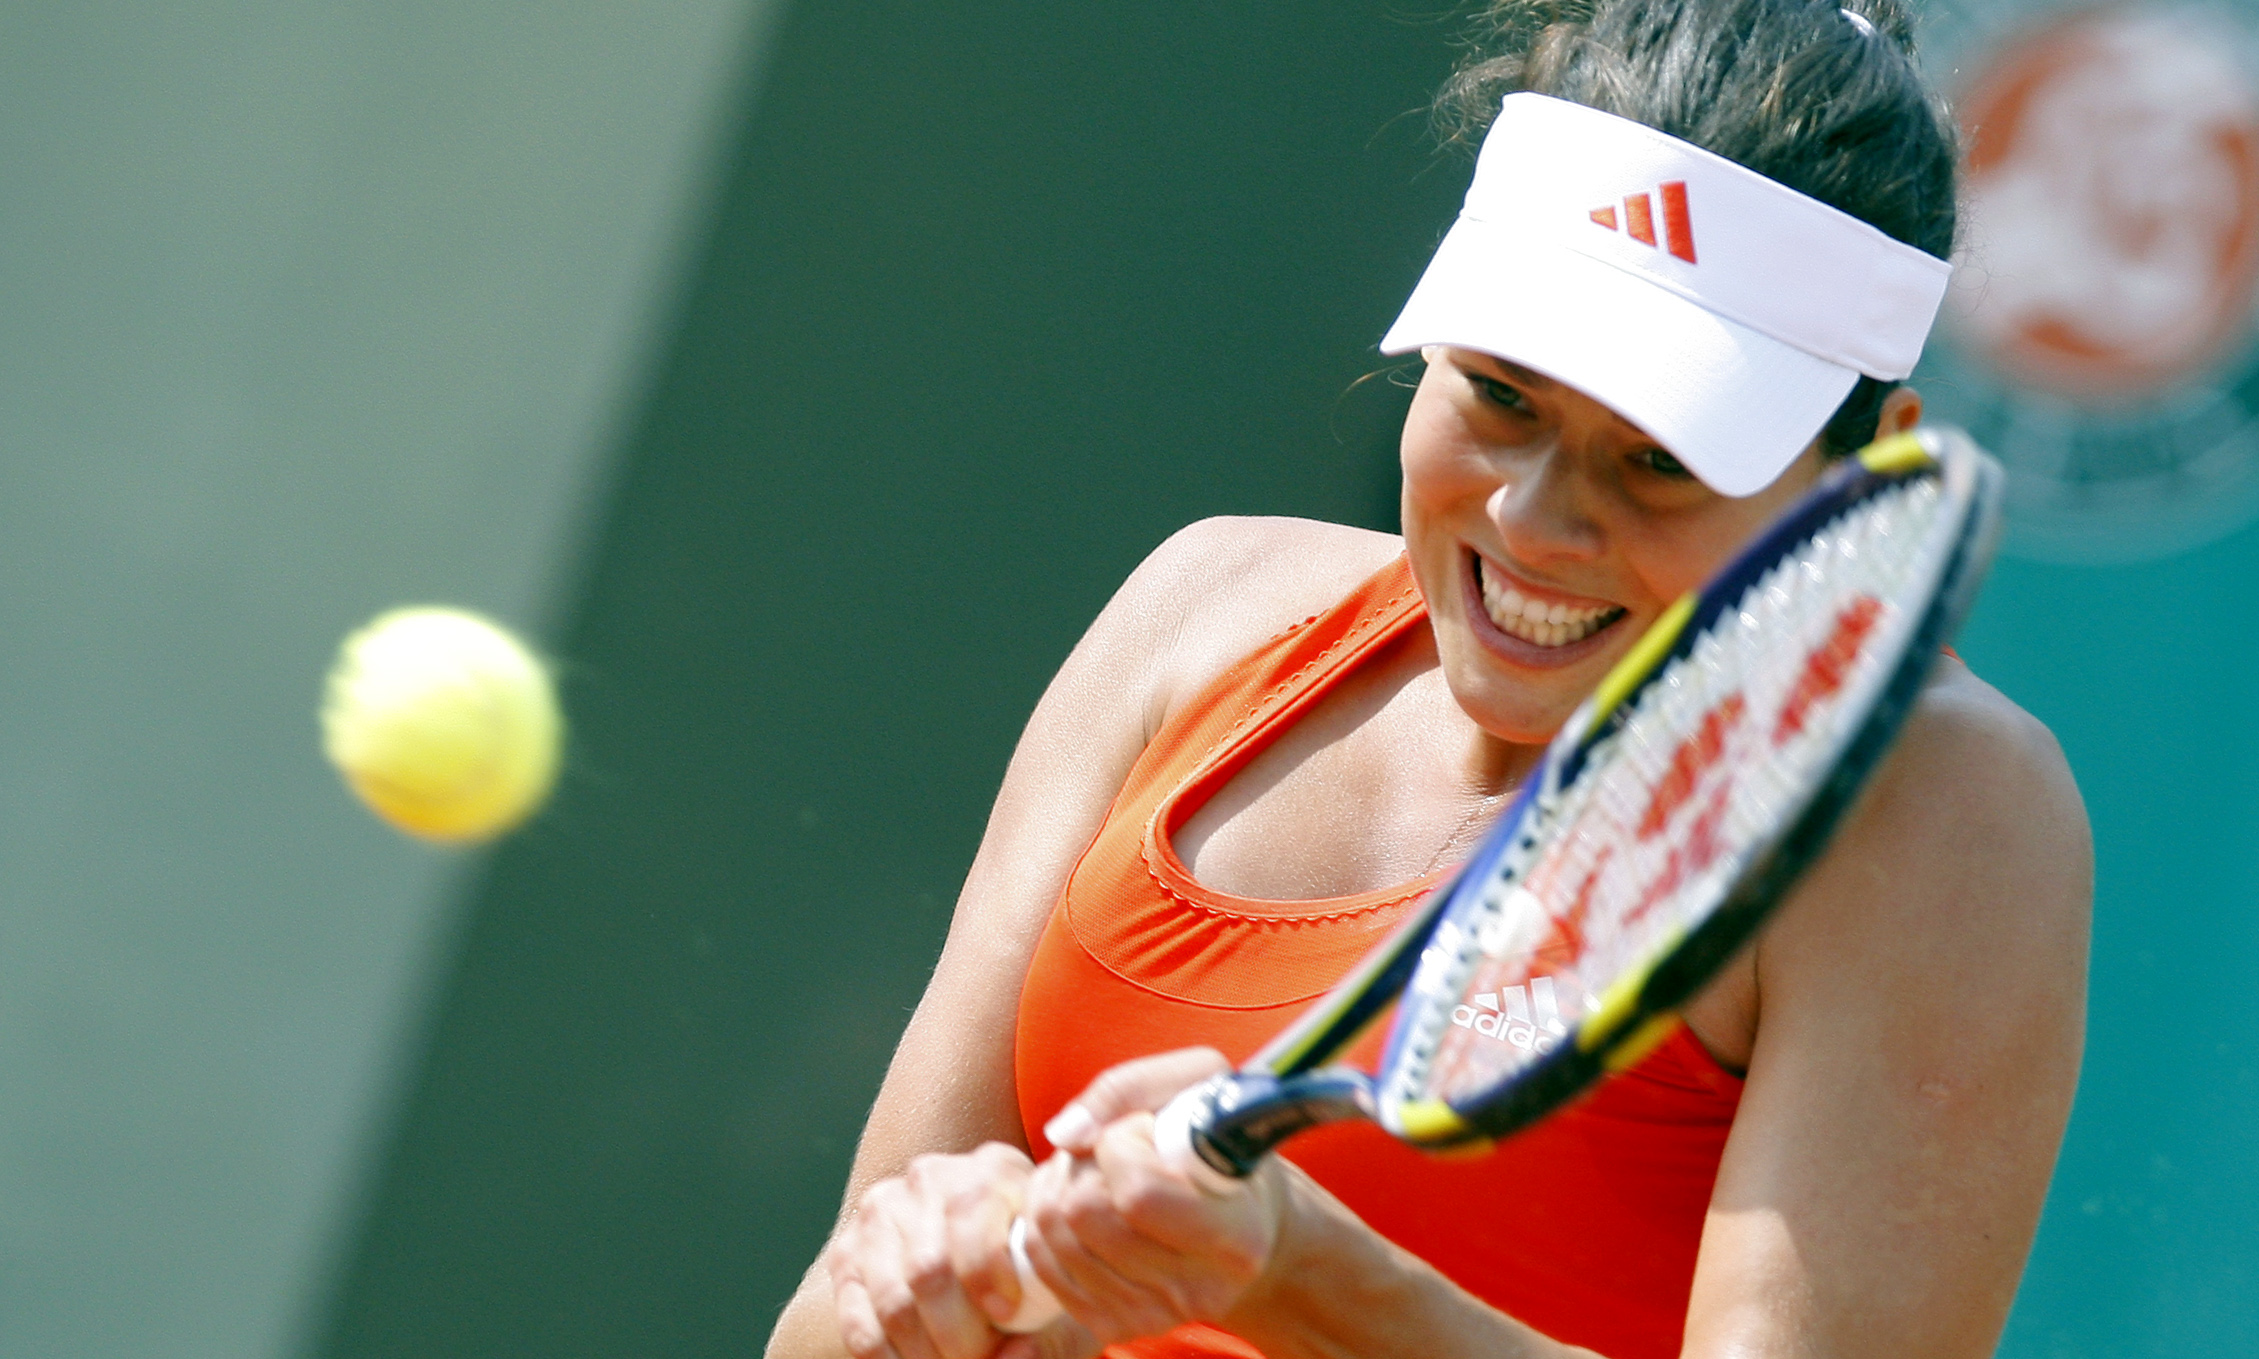 Serbia's Ana Ivanovic returns the ball to Russia's Alisa Kleybanova during a second round match of the French Open tennis tournament at the Roland Gar...